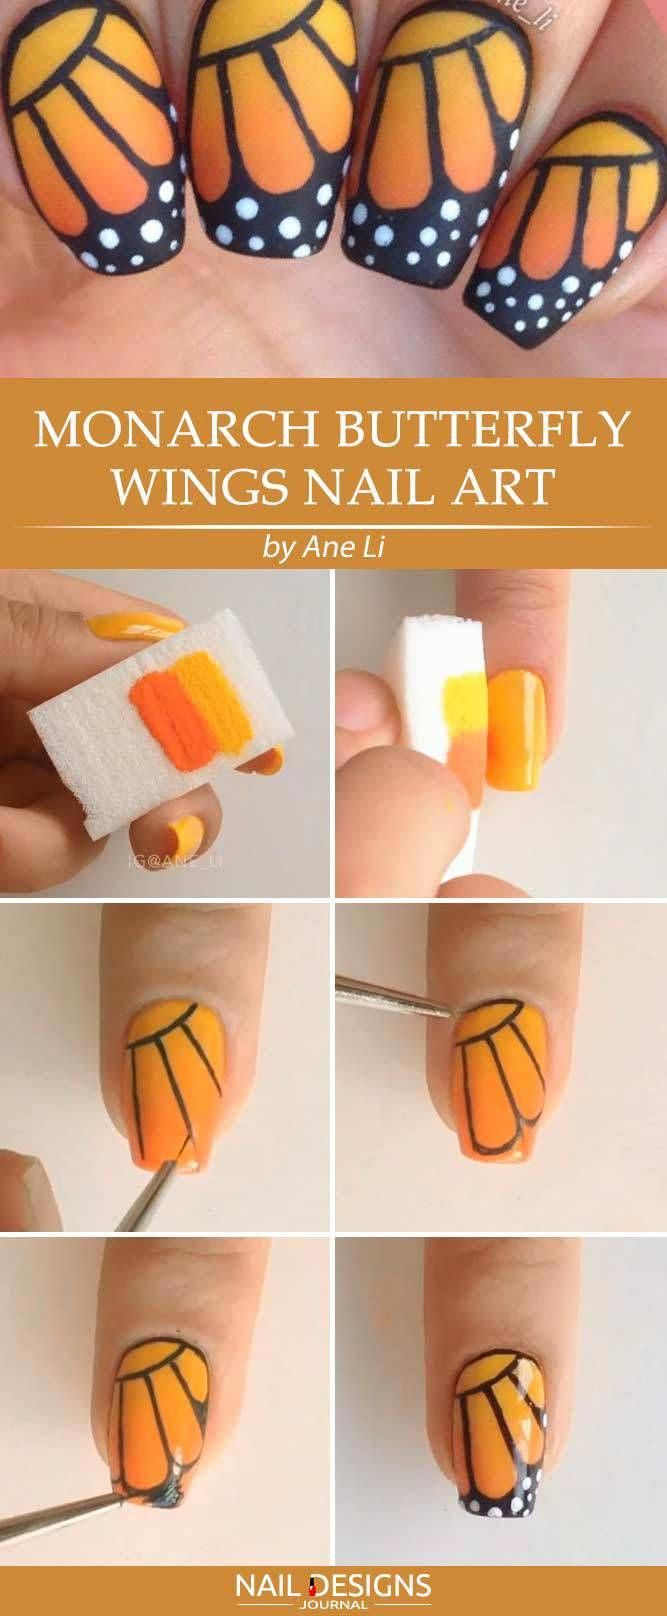 7 Beautiful Butterfly Nails Tutorials To Create A Masterpiece 3 Monarch Butterfly Wings Nail Art In Butterfly Nail Designs Butterfly Nail Art Butterfly Nail